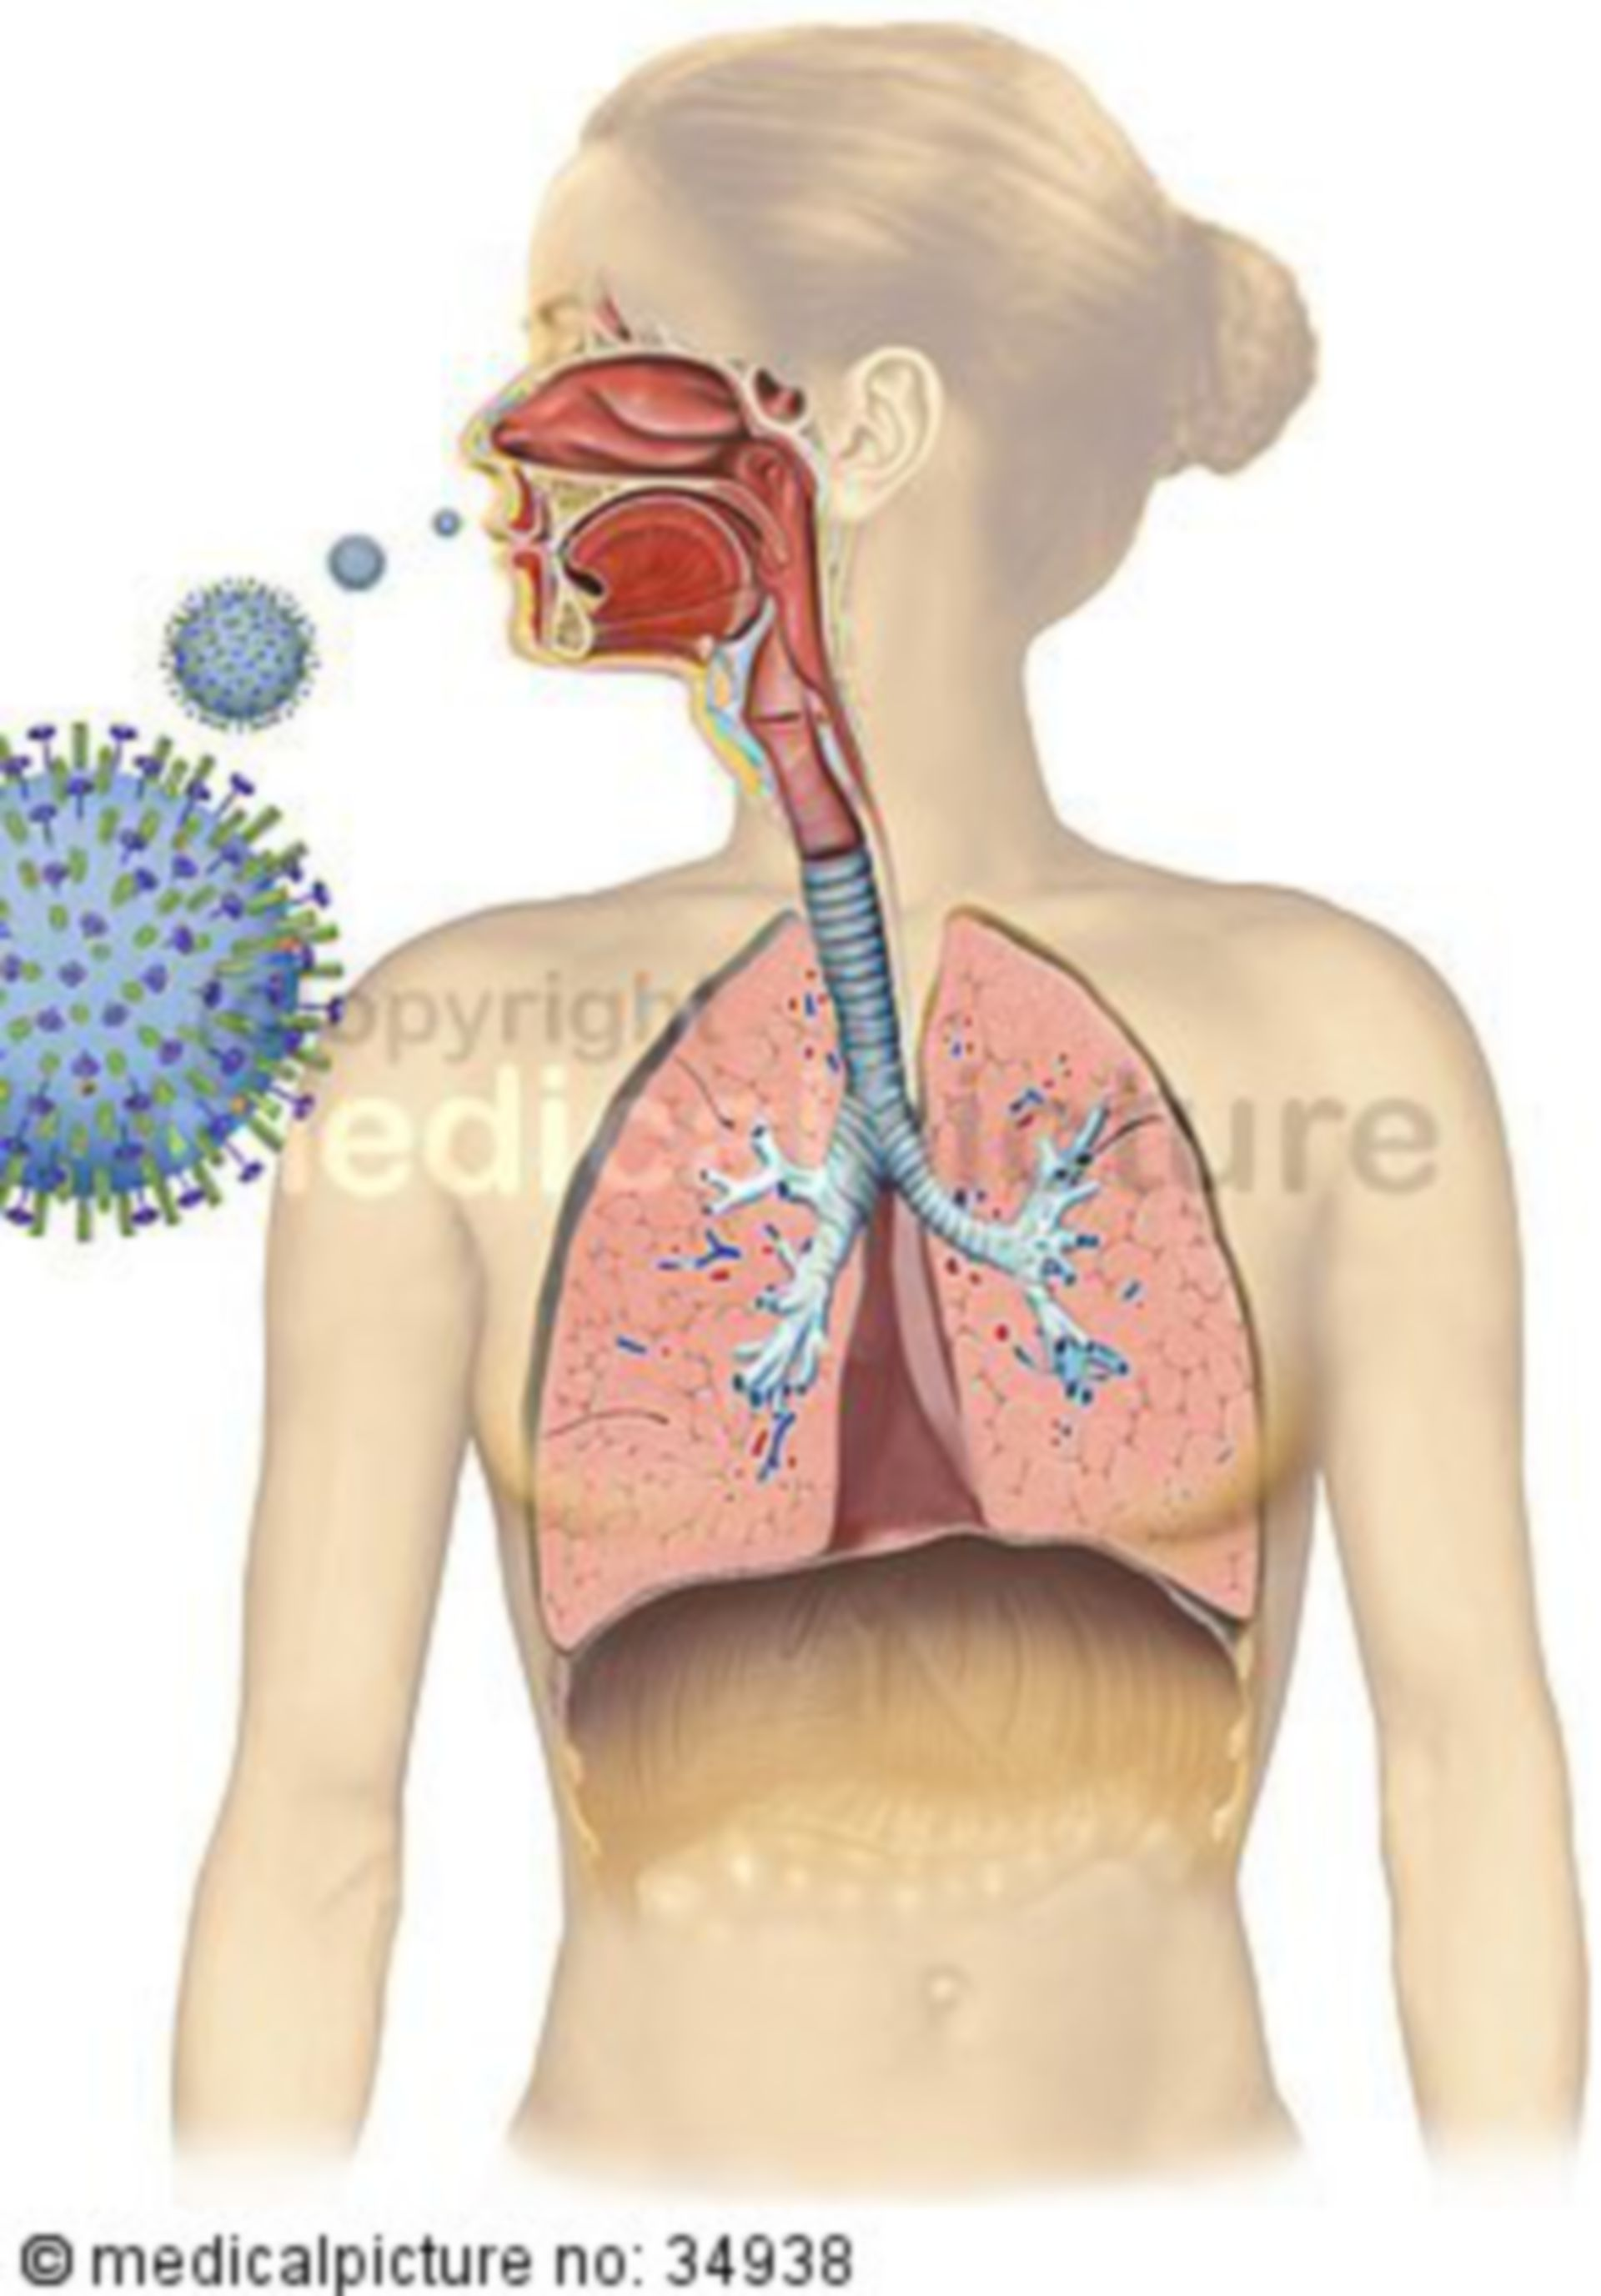 Influenza, common cold